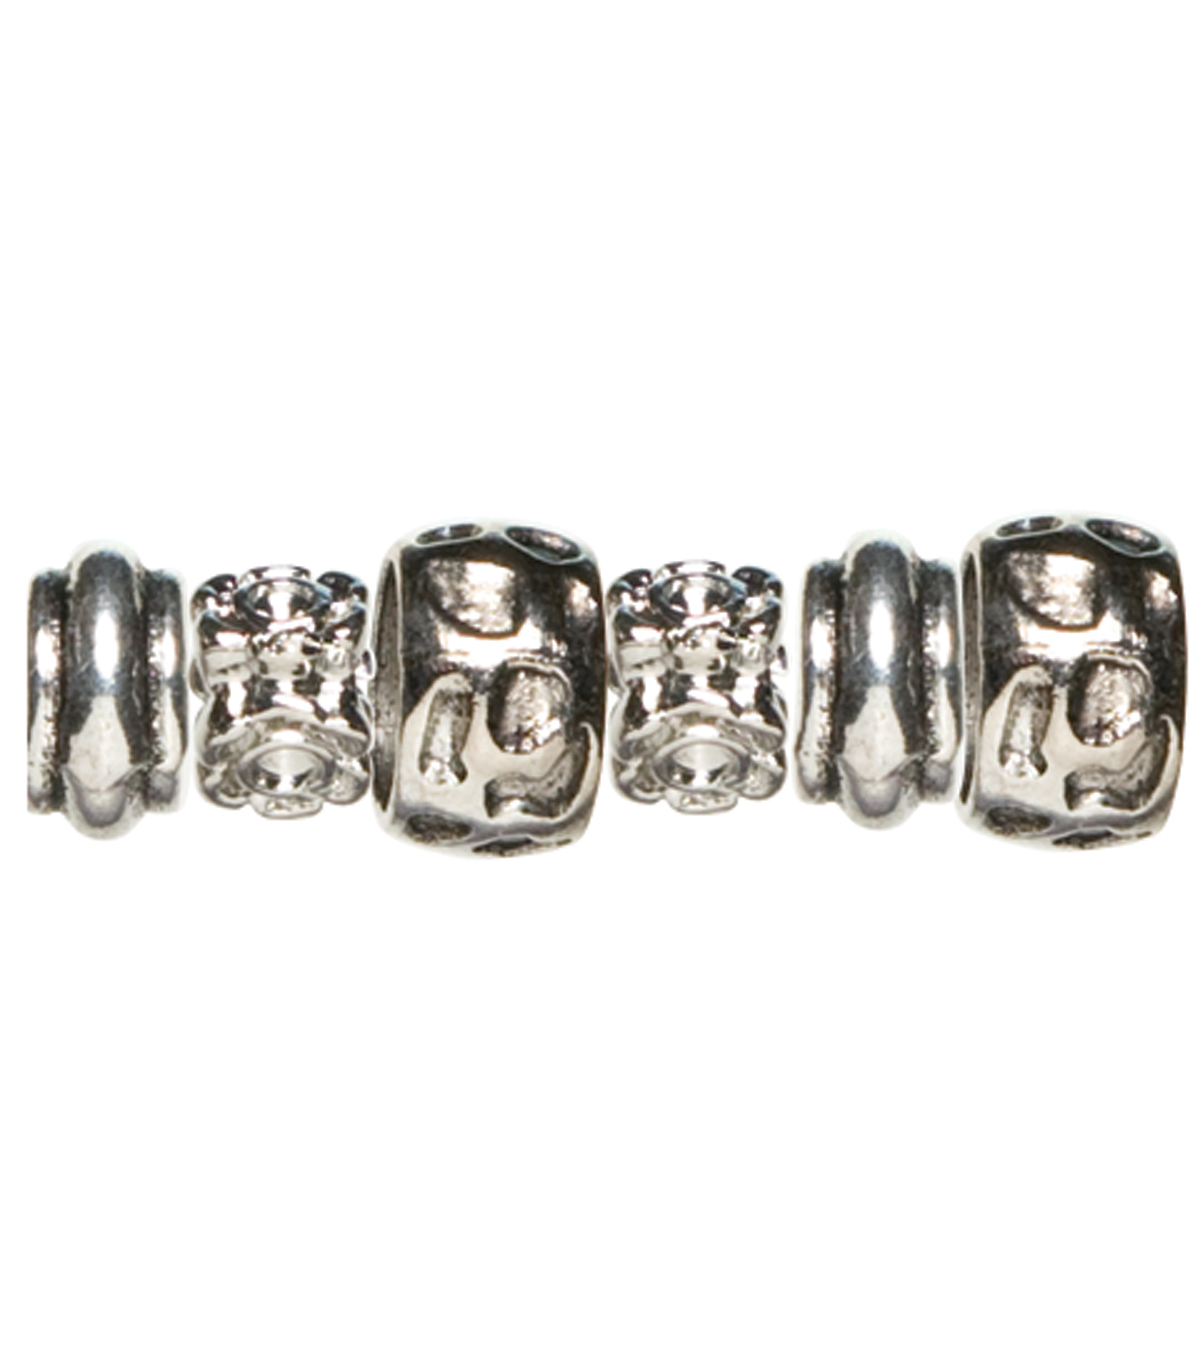 Cousin Trinkettes Metal Beads 6PK-Animal Print